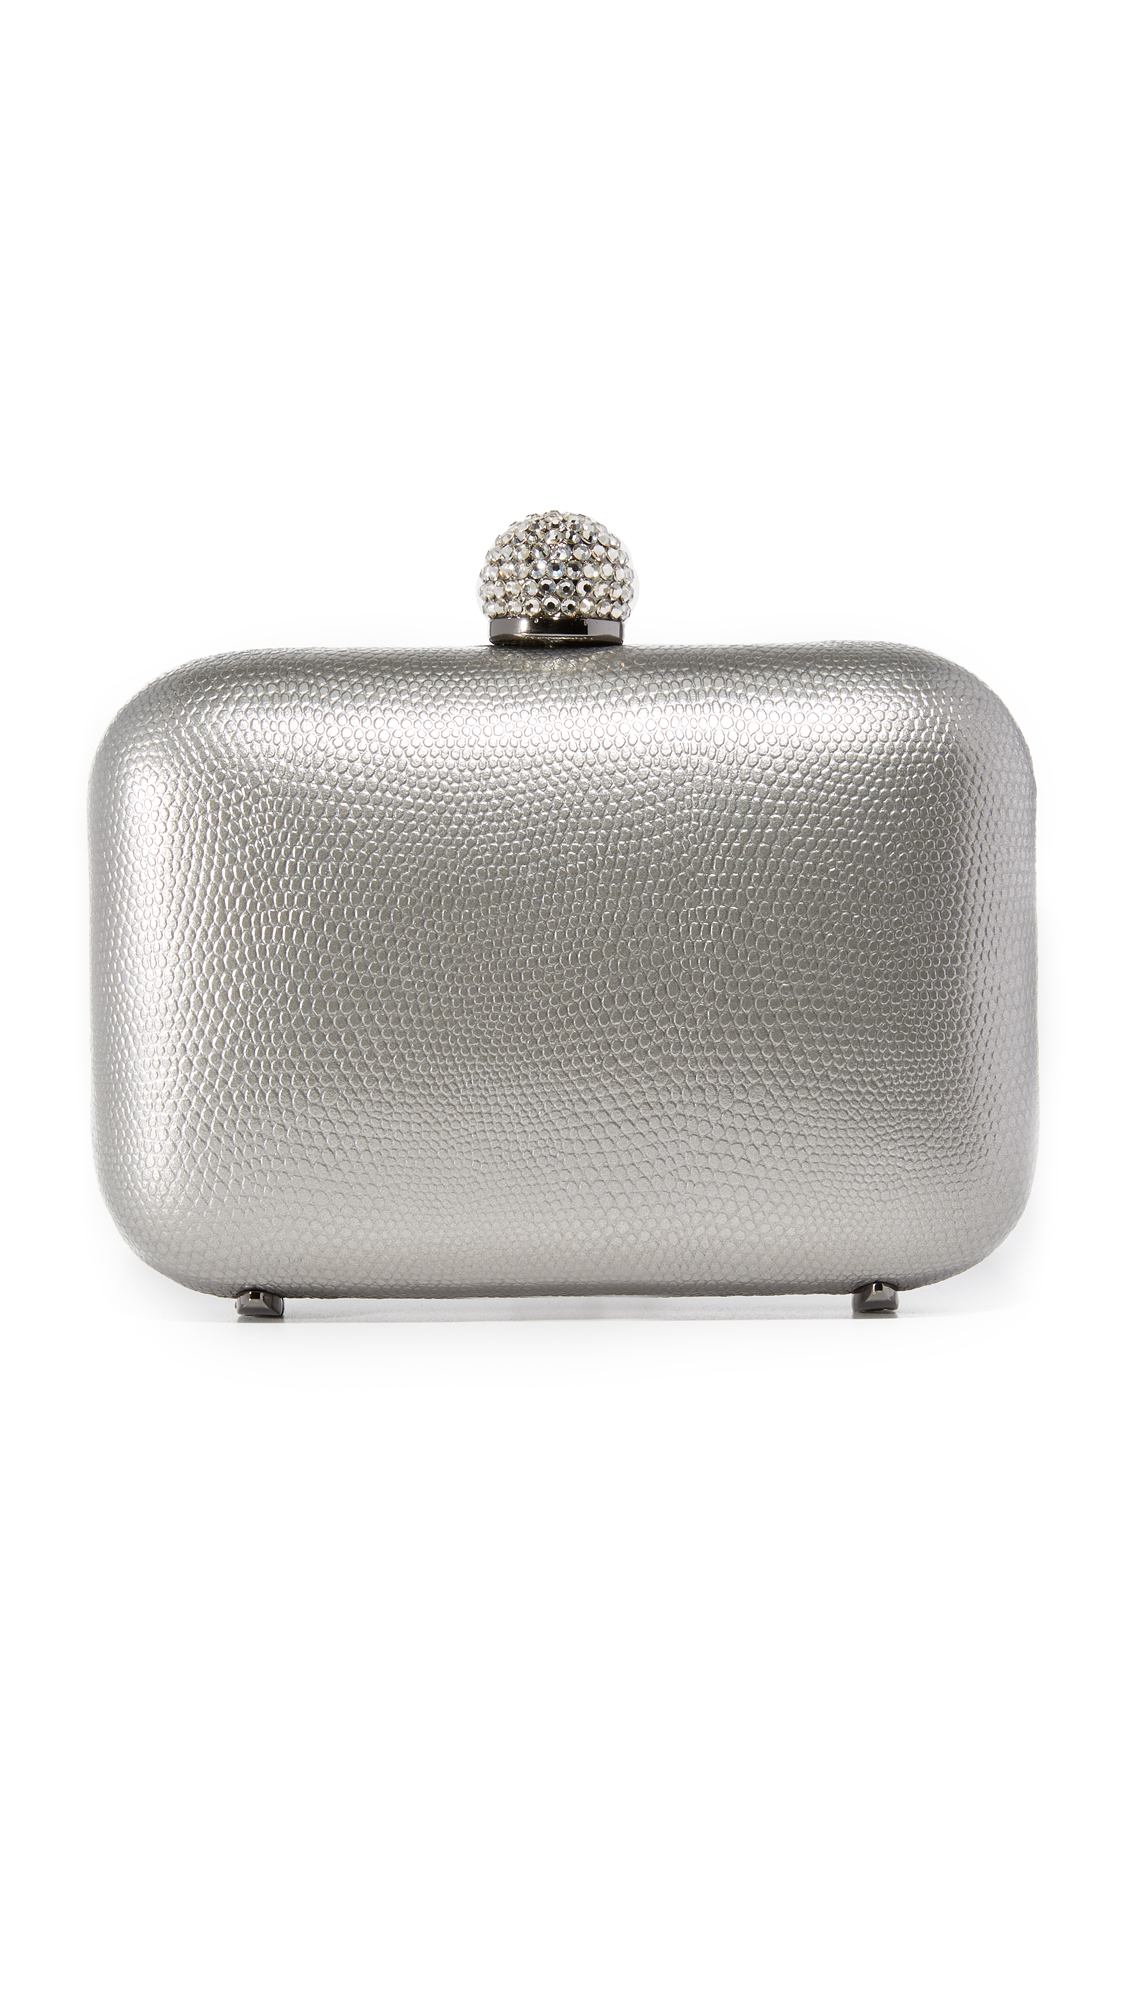 Inge Christopher Fiona Leather Clutch - Pewter